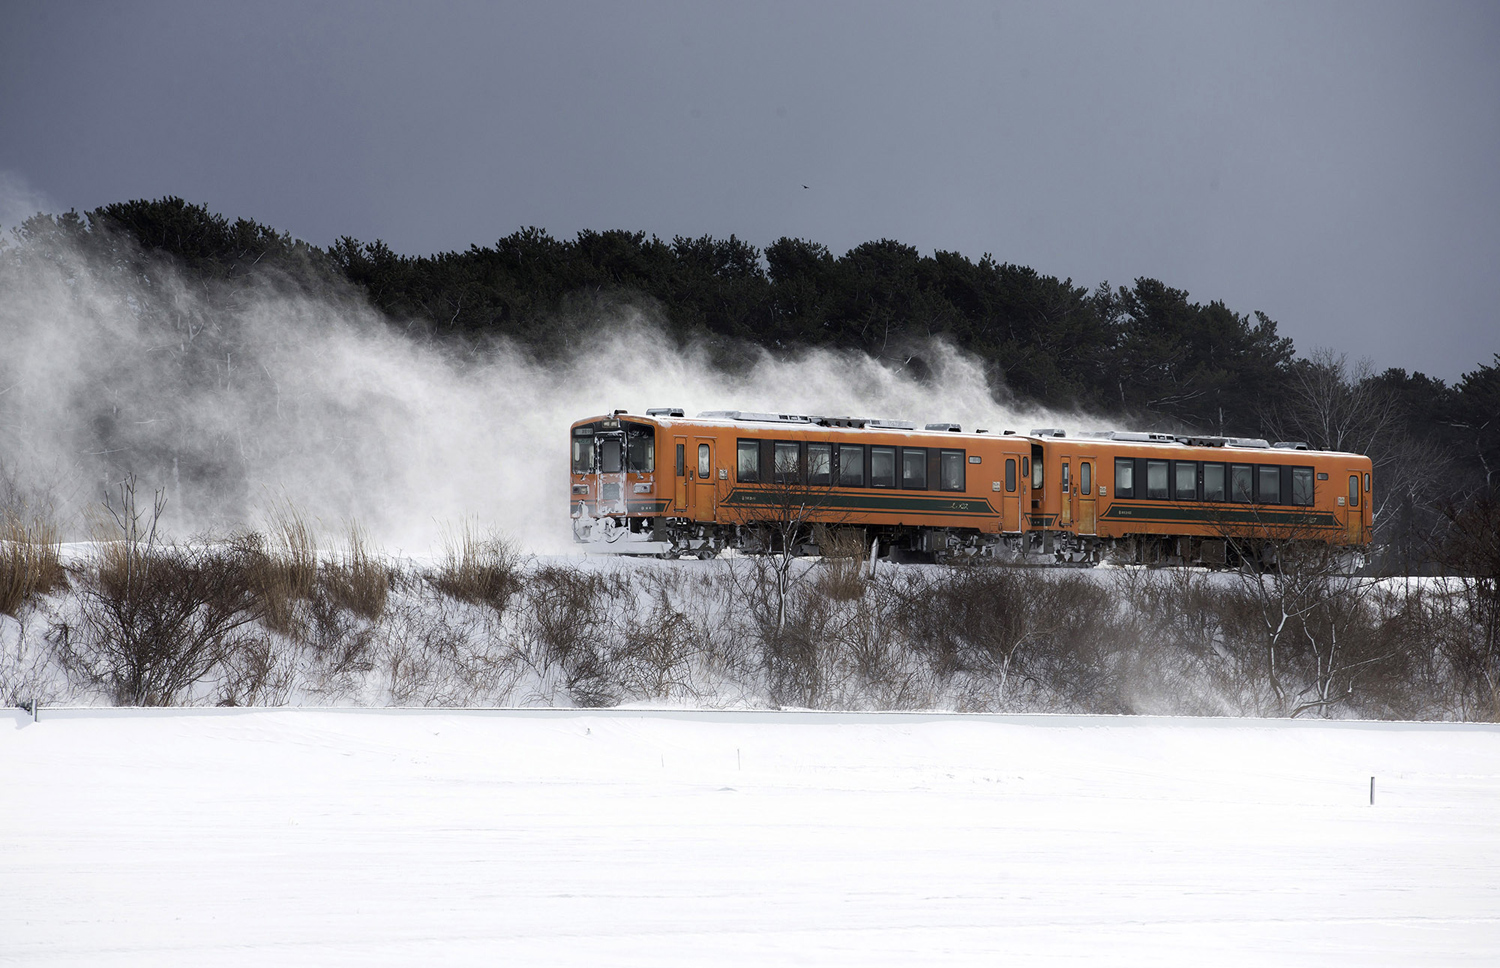 Potbelly Stove Train Passes Through Snow Field